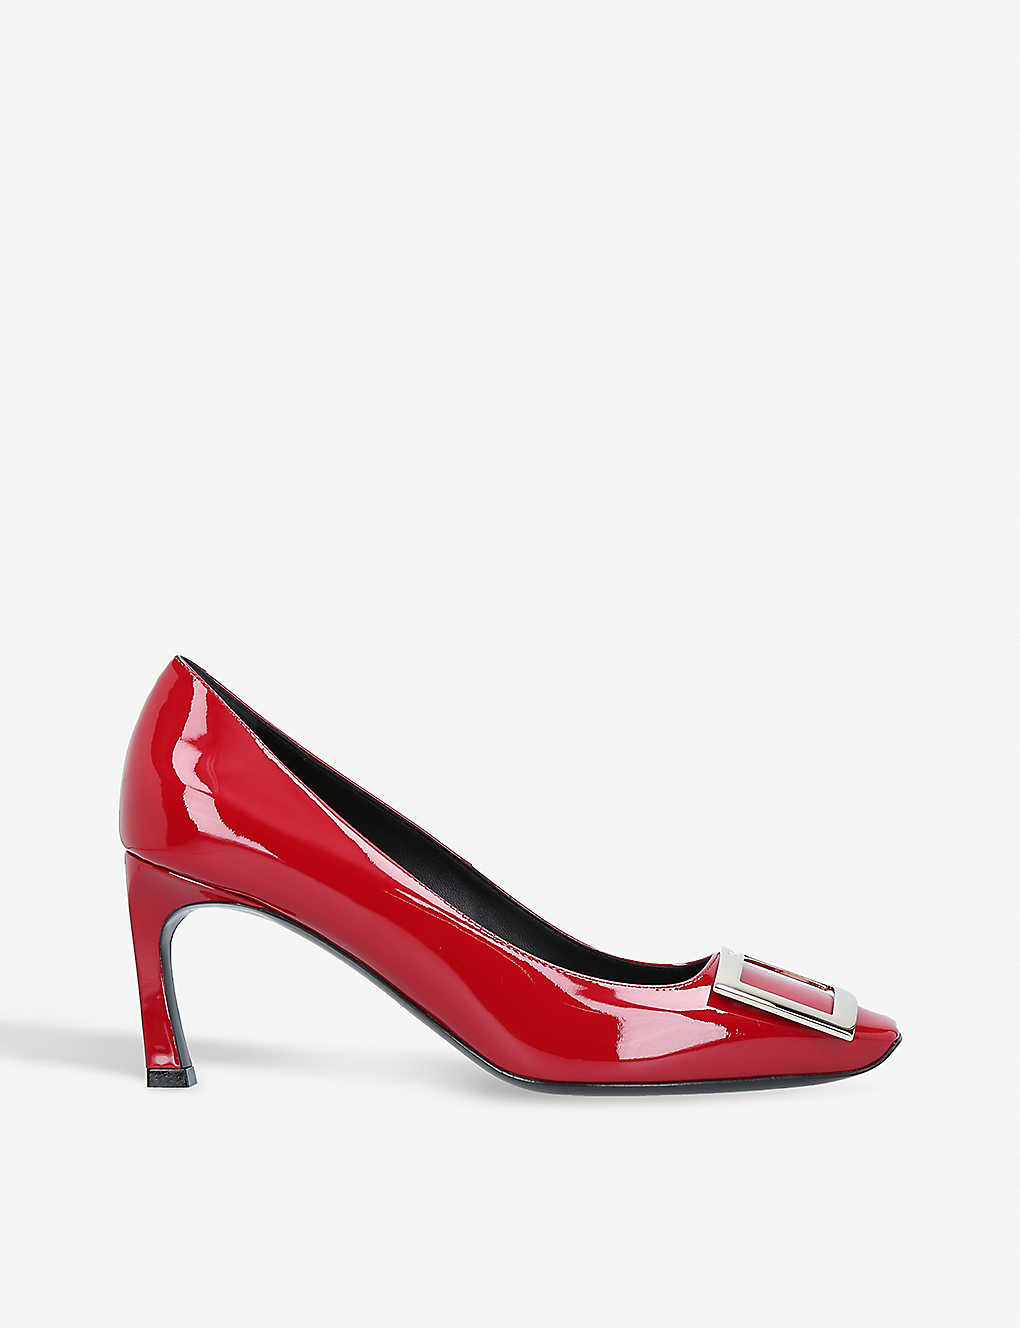 96f029e0fbfc ROGER VIVIER - Belle Vivier patent leather heeled courts ...